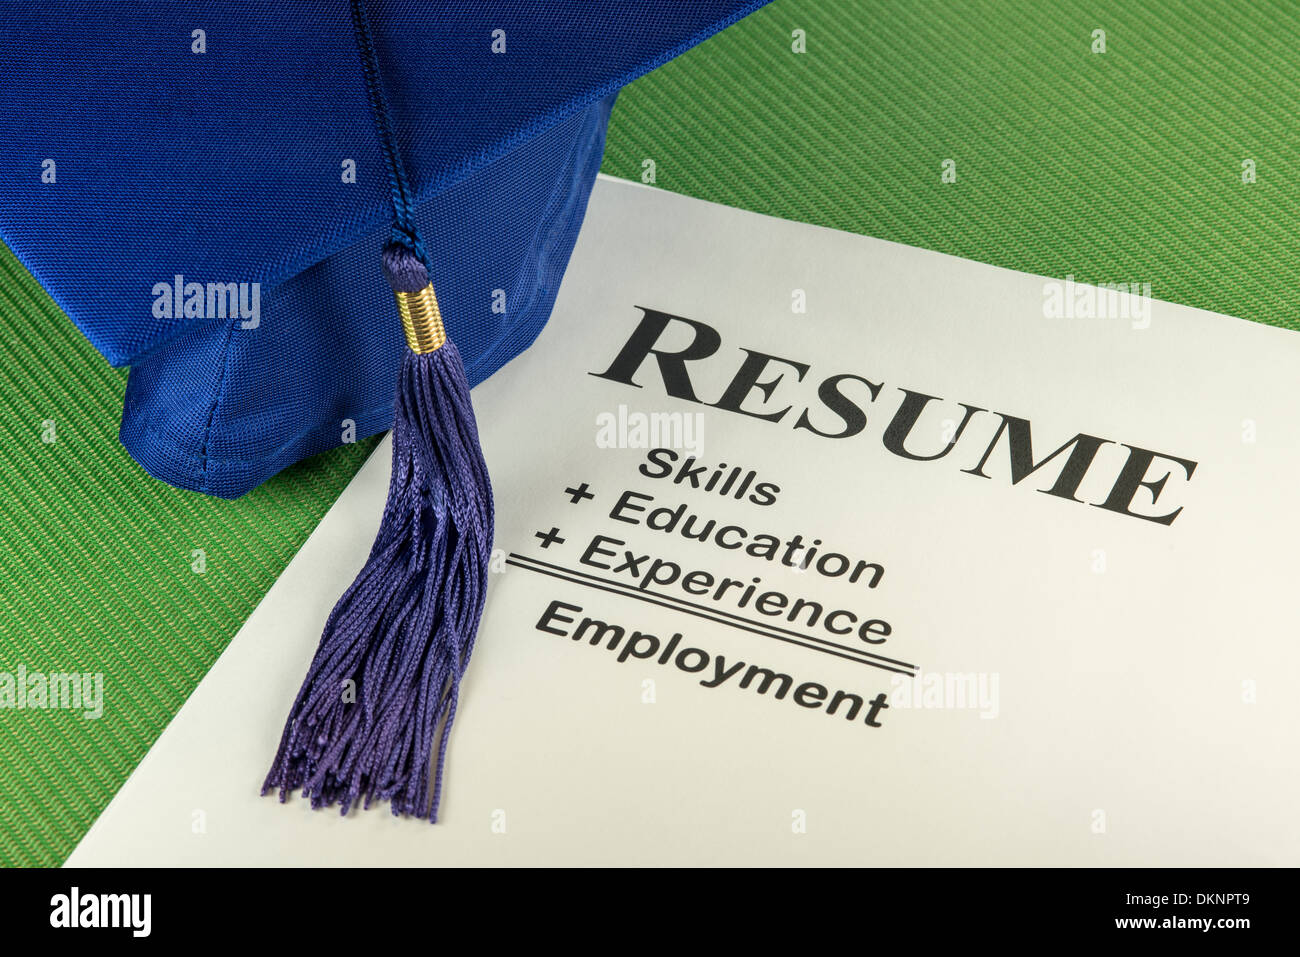 Successful Candidate Resume: Skills + Education + Experience = Employment - Stock Image